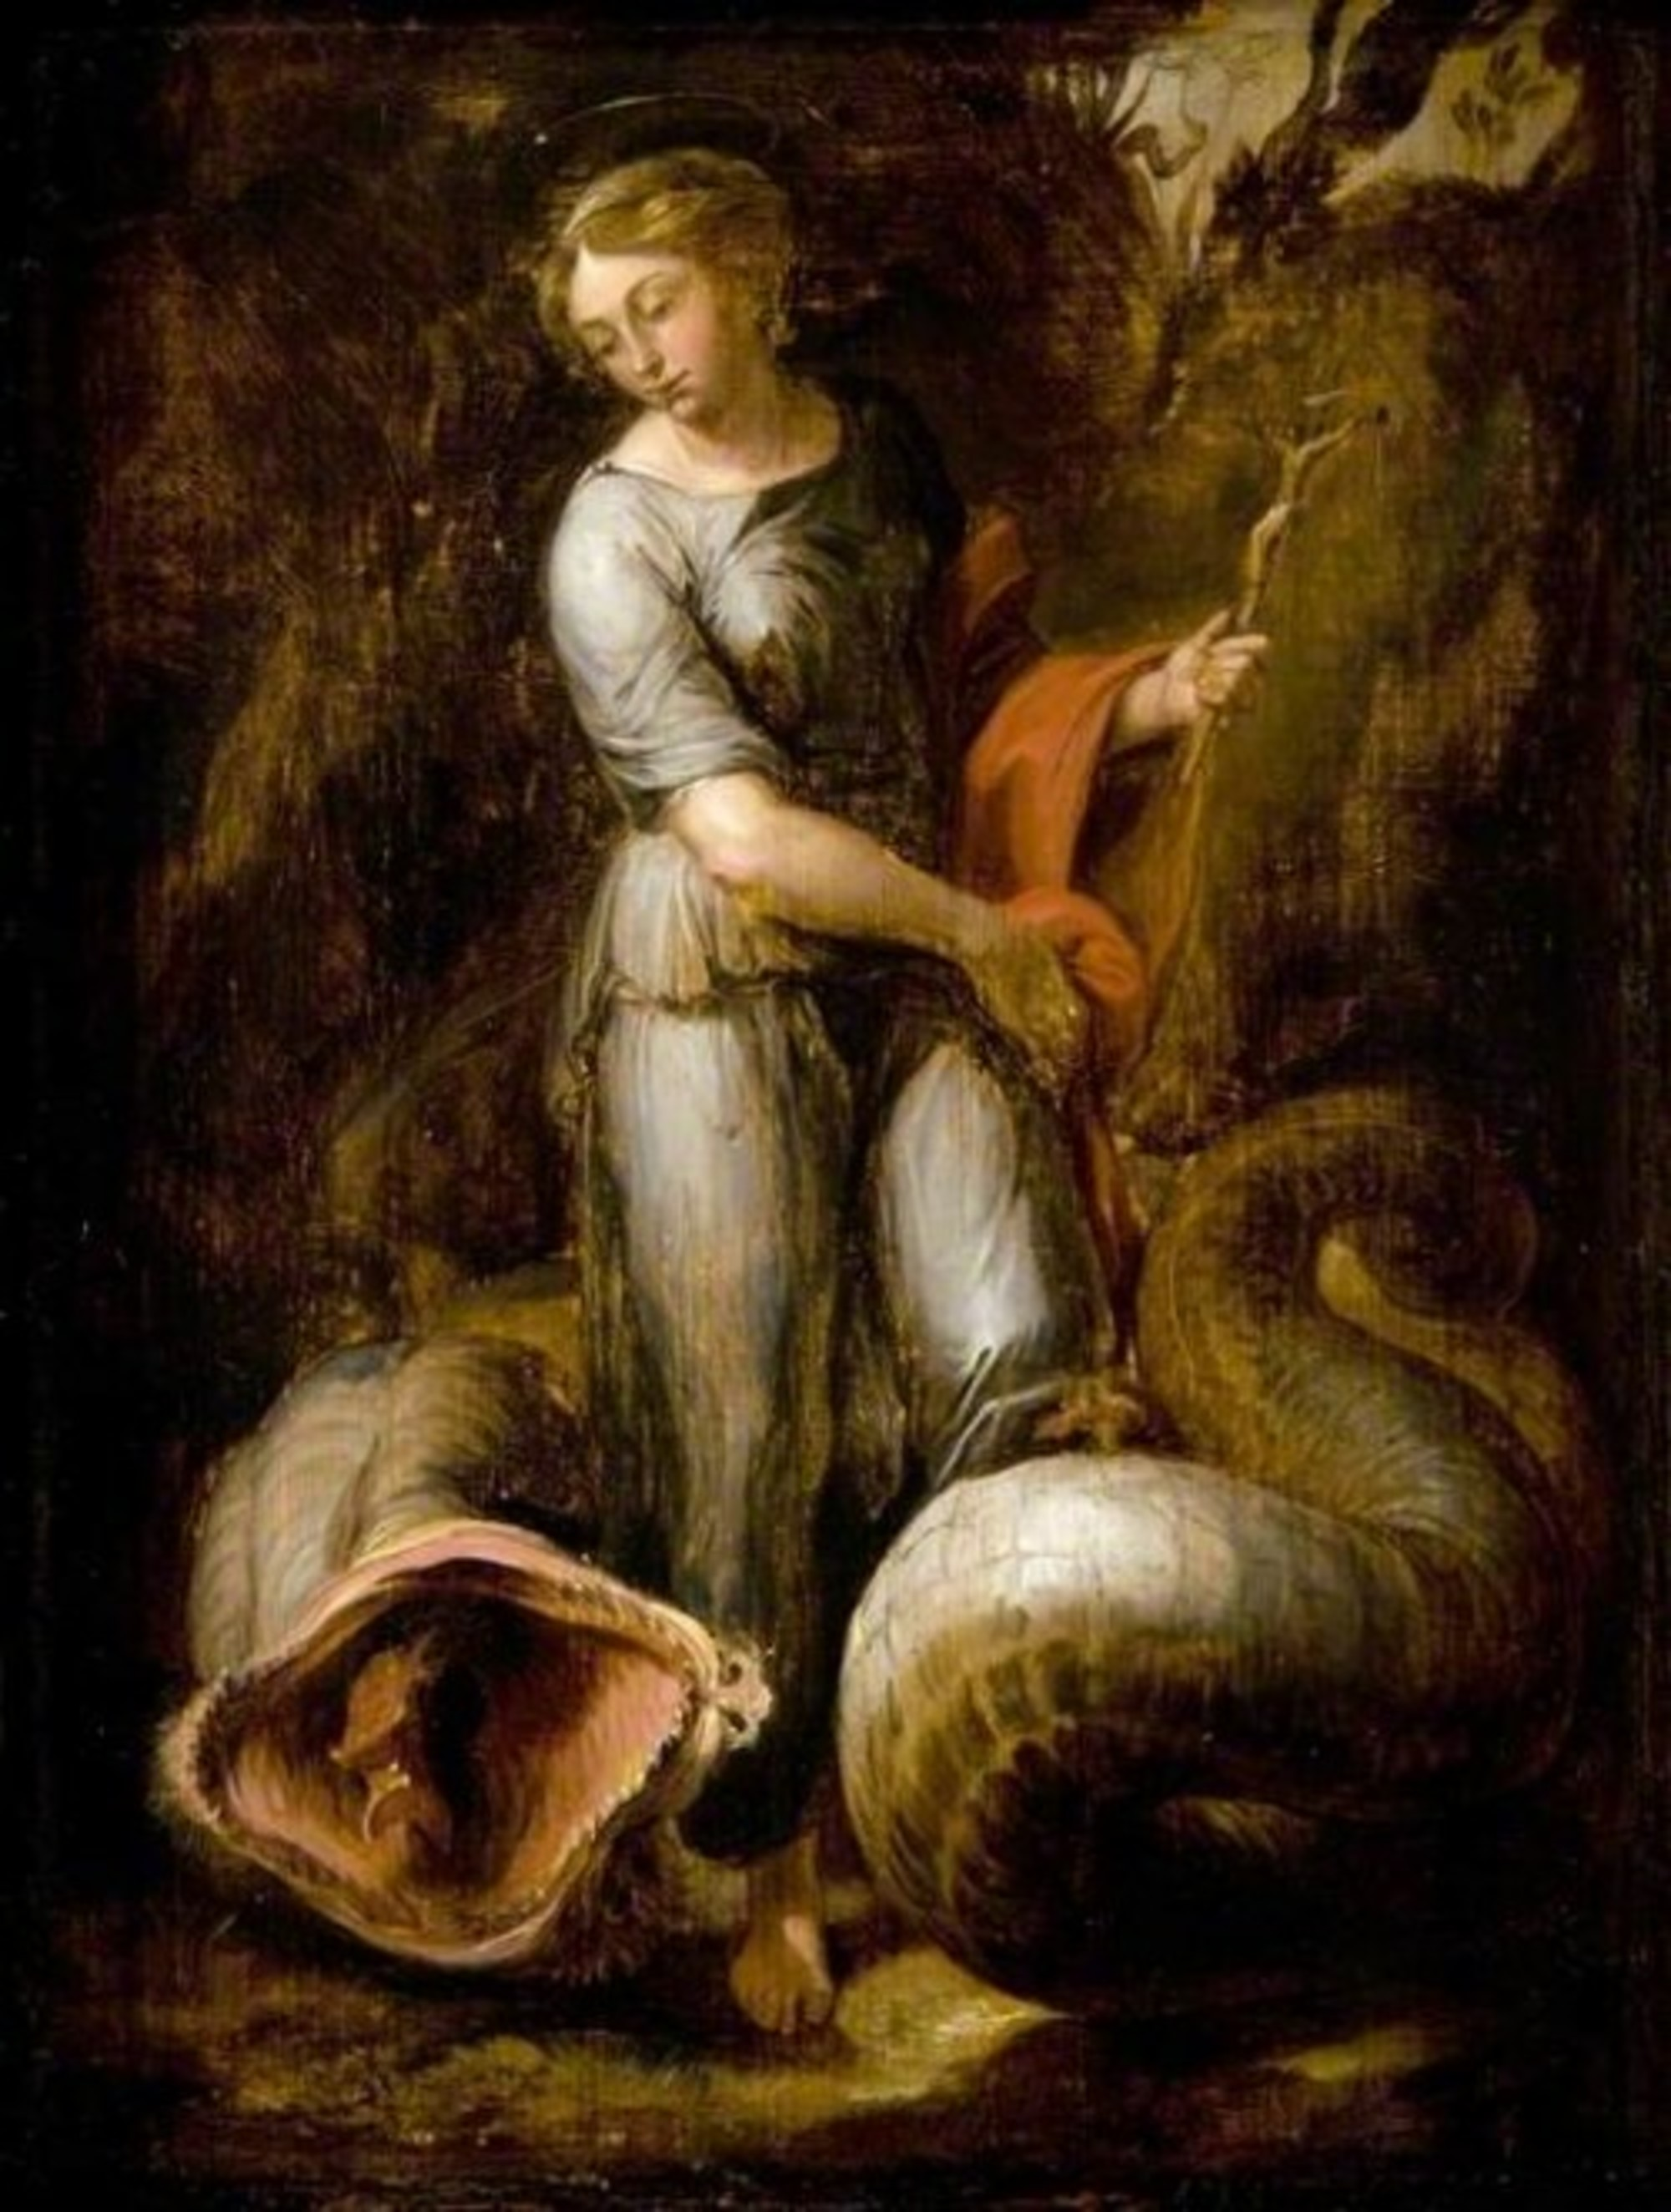 David-Teniers-after-Raphael---St-Margaret-and-the-Dragon-GL-GM-37.jpg